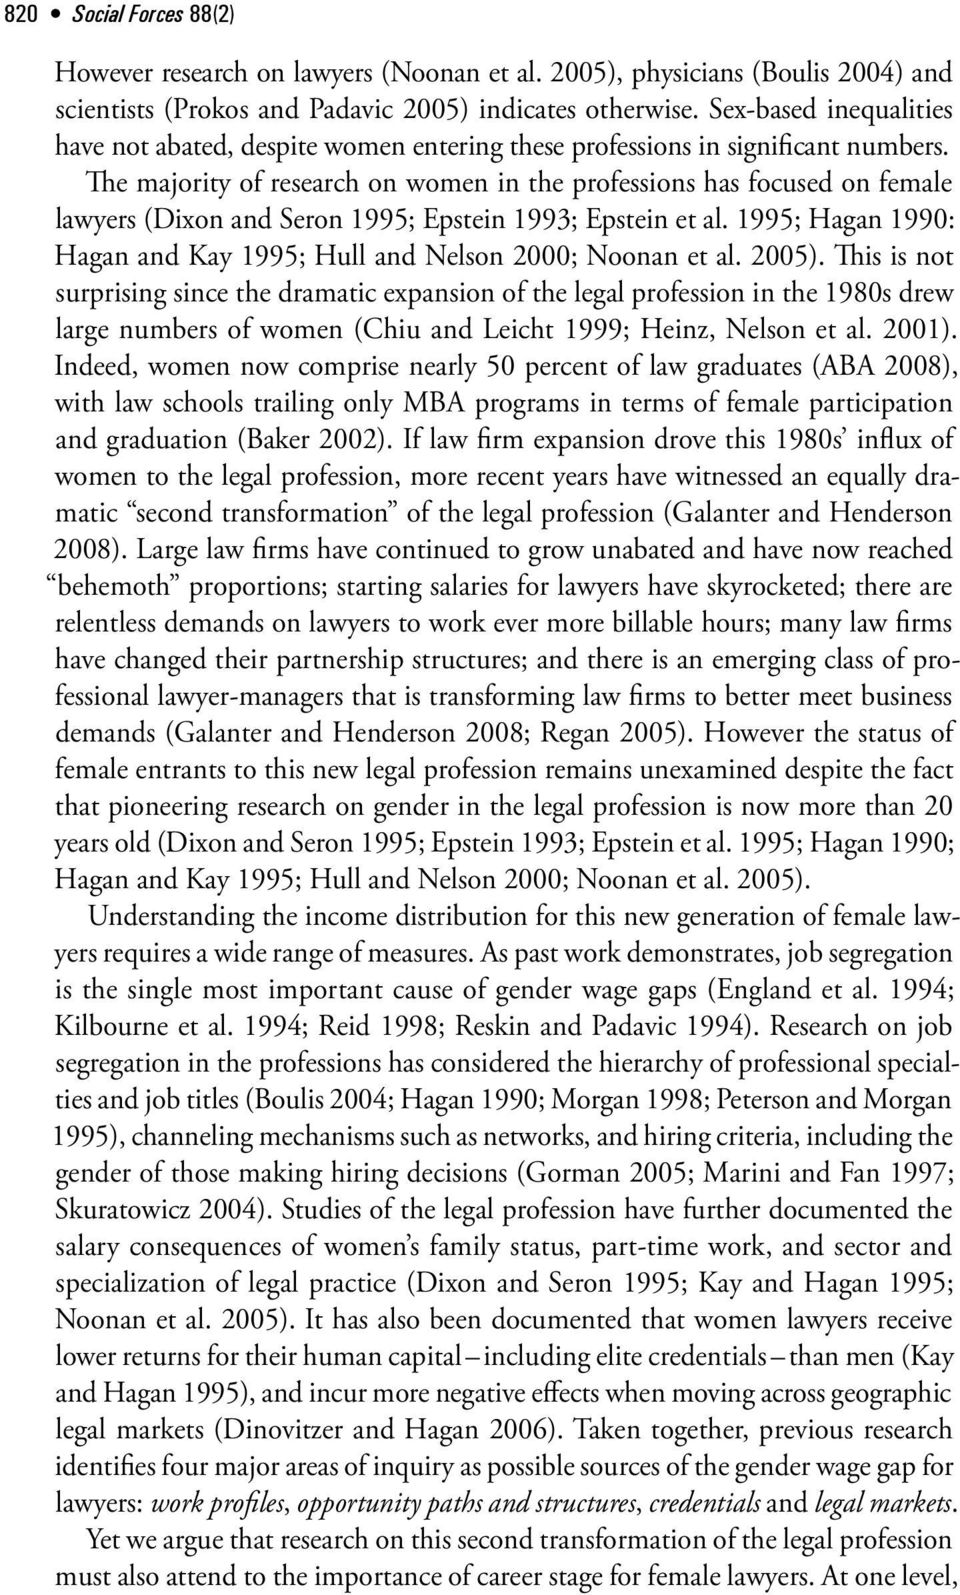 The majority of research on women in the professions has focused on female lawyers (Dixon and Seron 1995; Epstein 1993; Epstein et al.